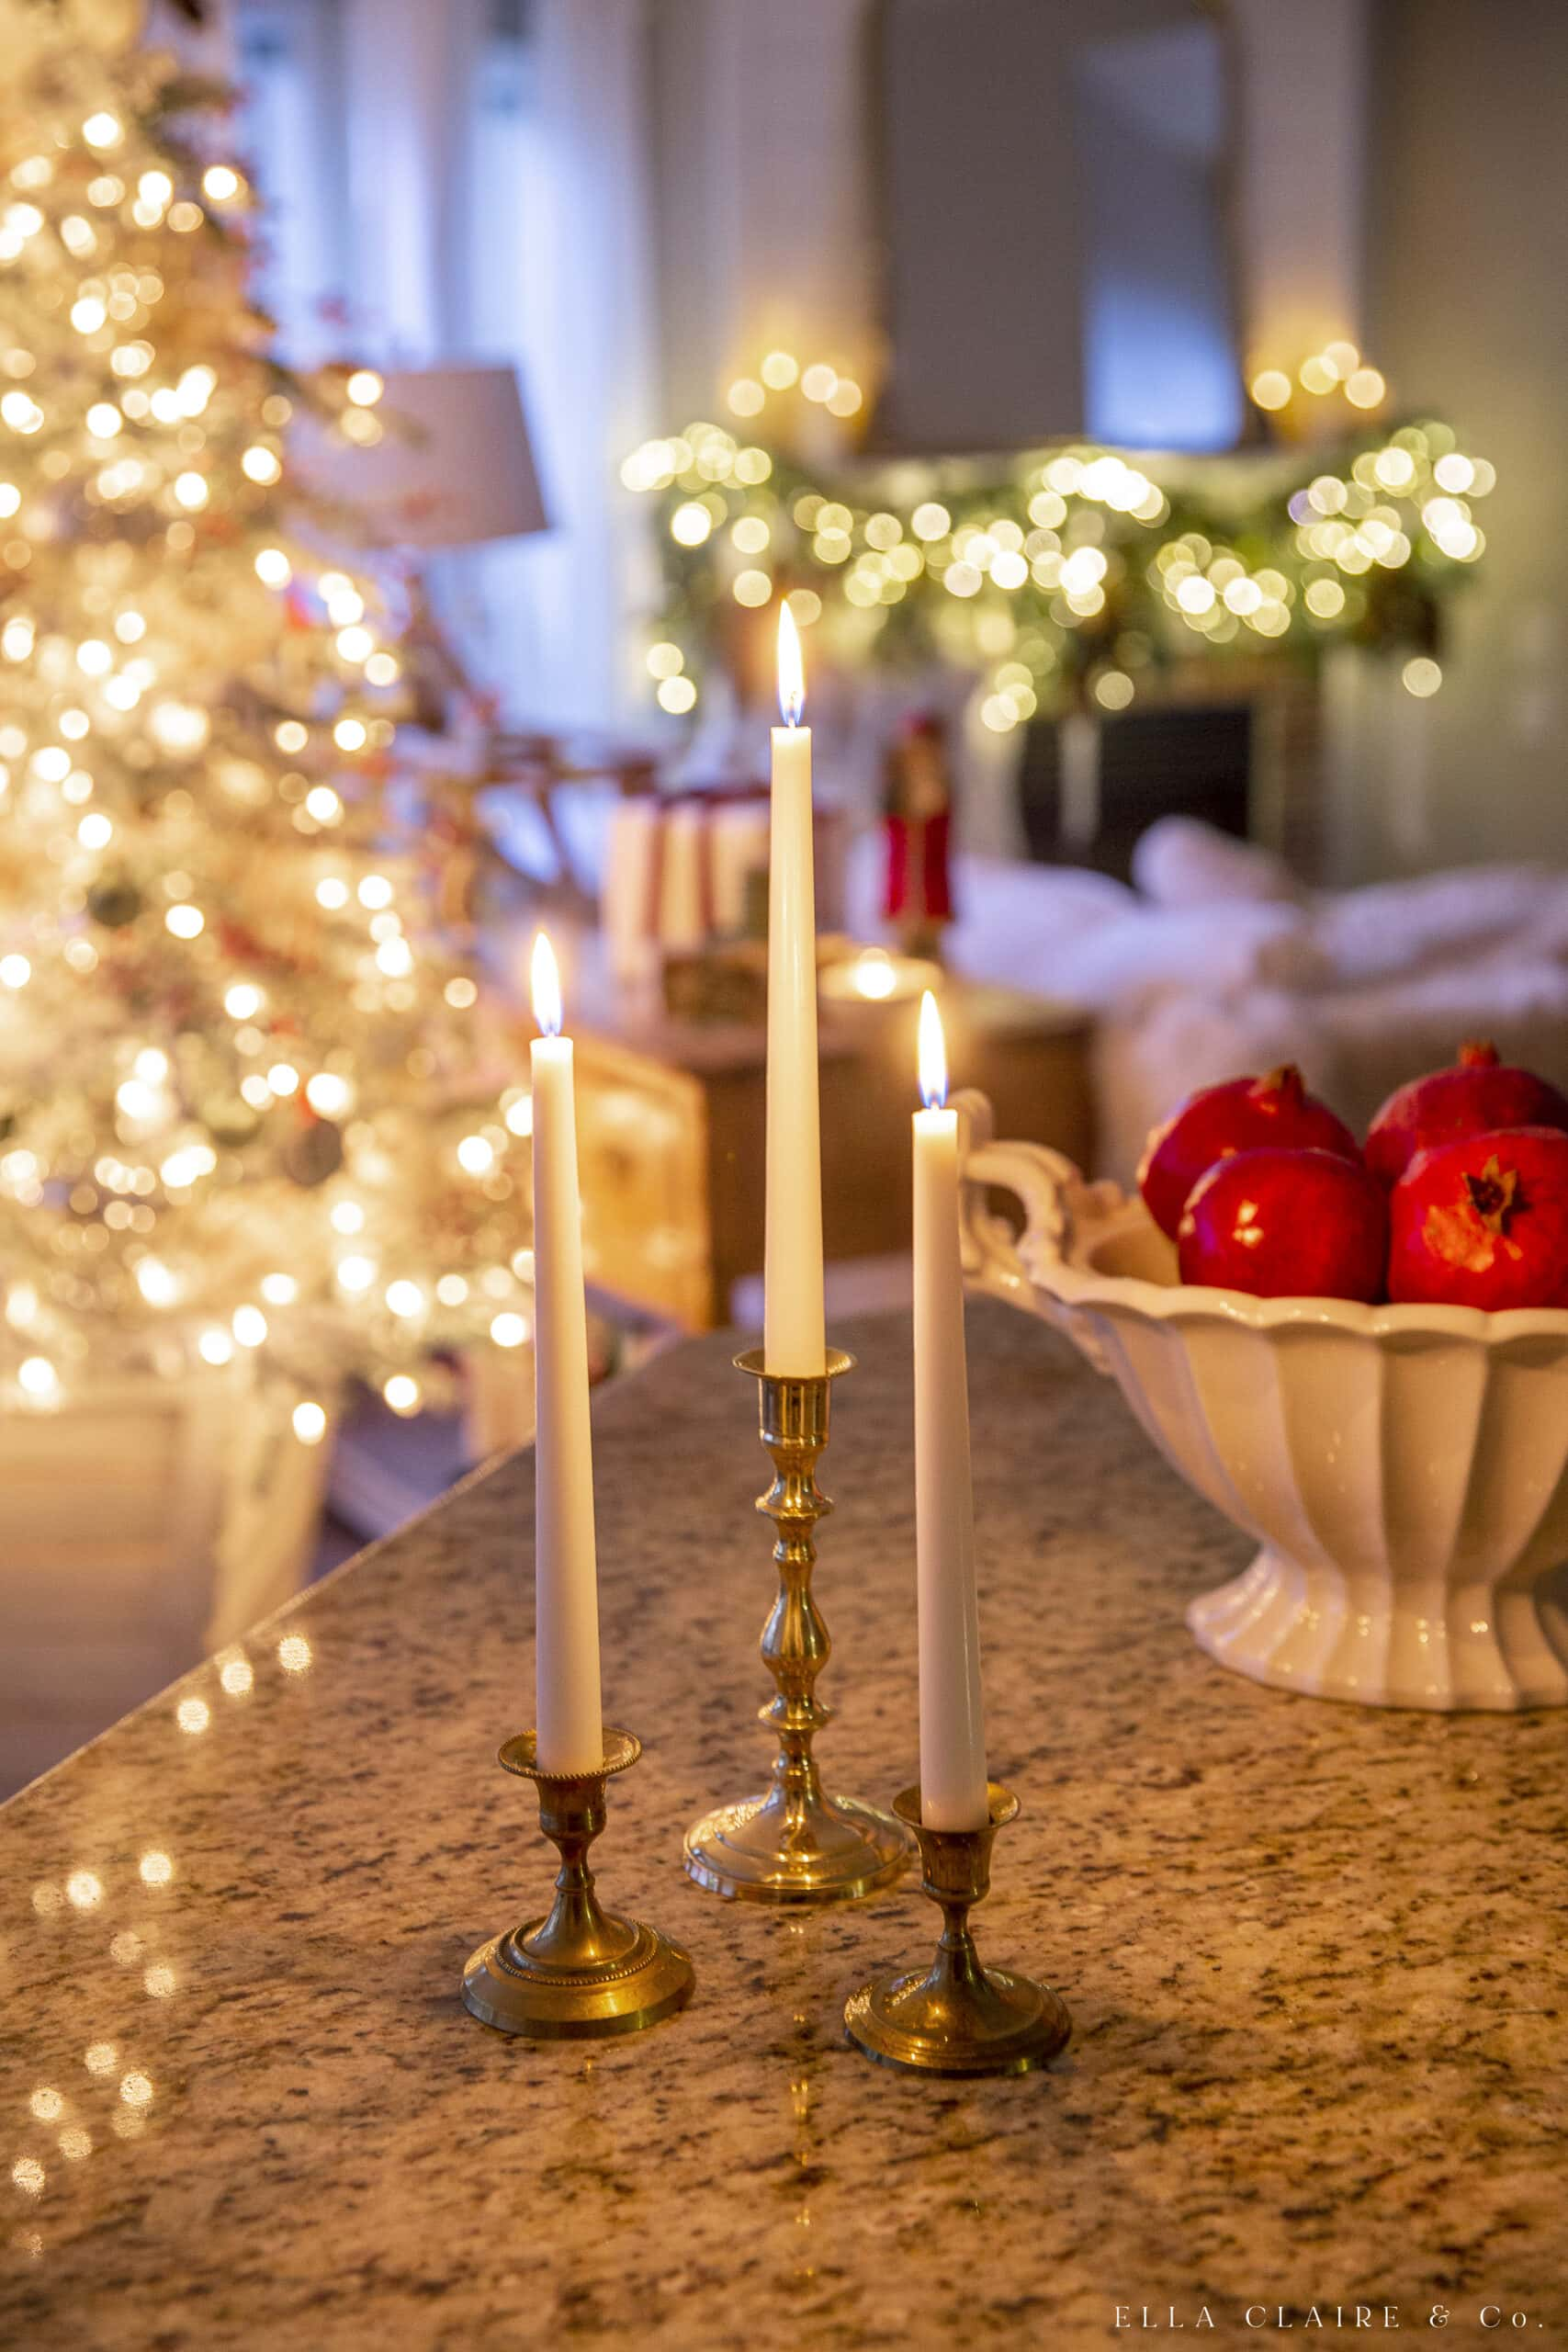 candlelight at christmas with tree